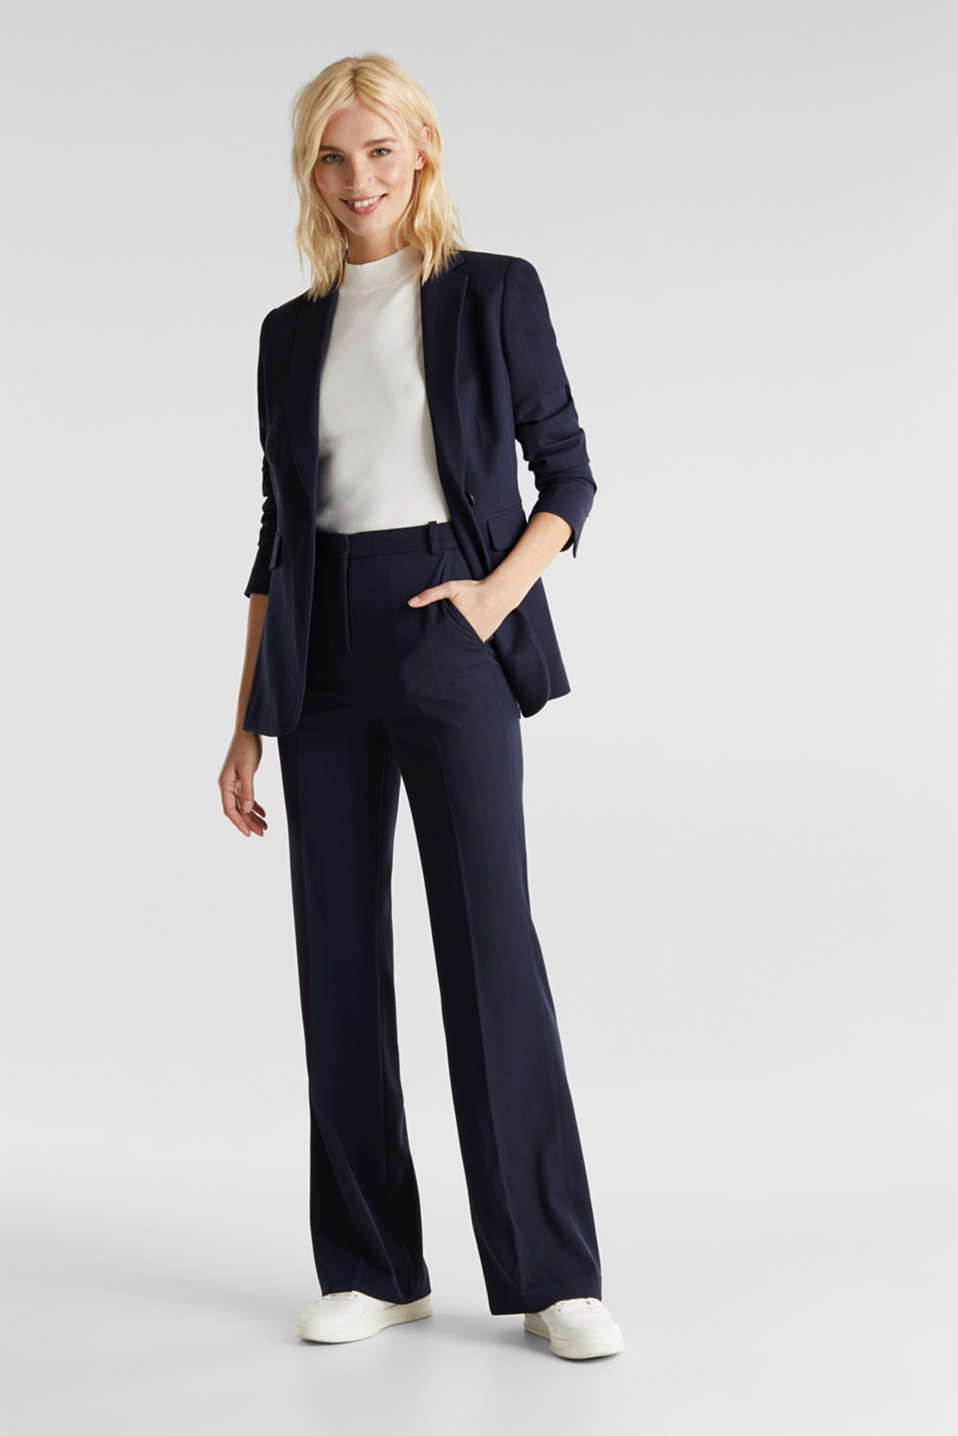 HERRINGBONE Mix + Match stretch trousers, NAVY, detail image number 1